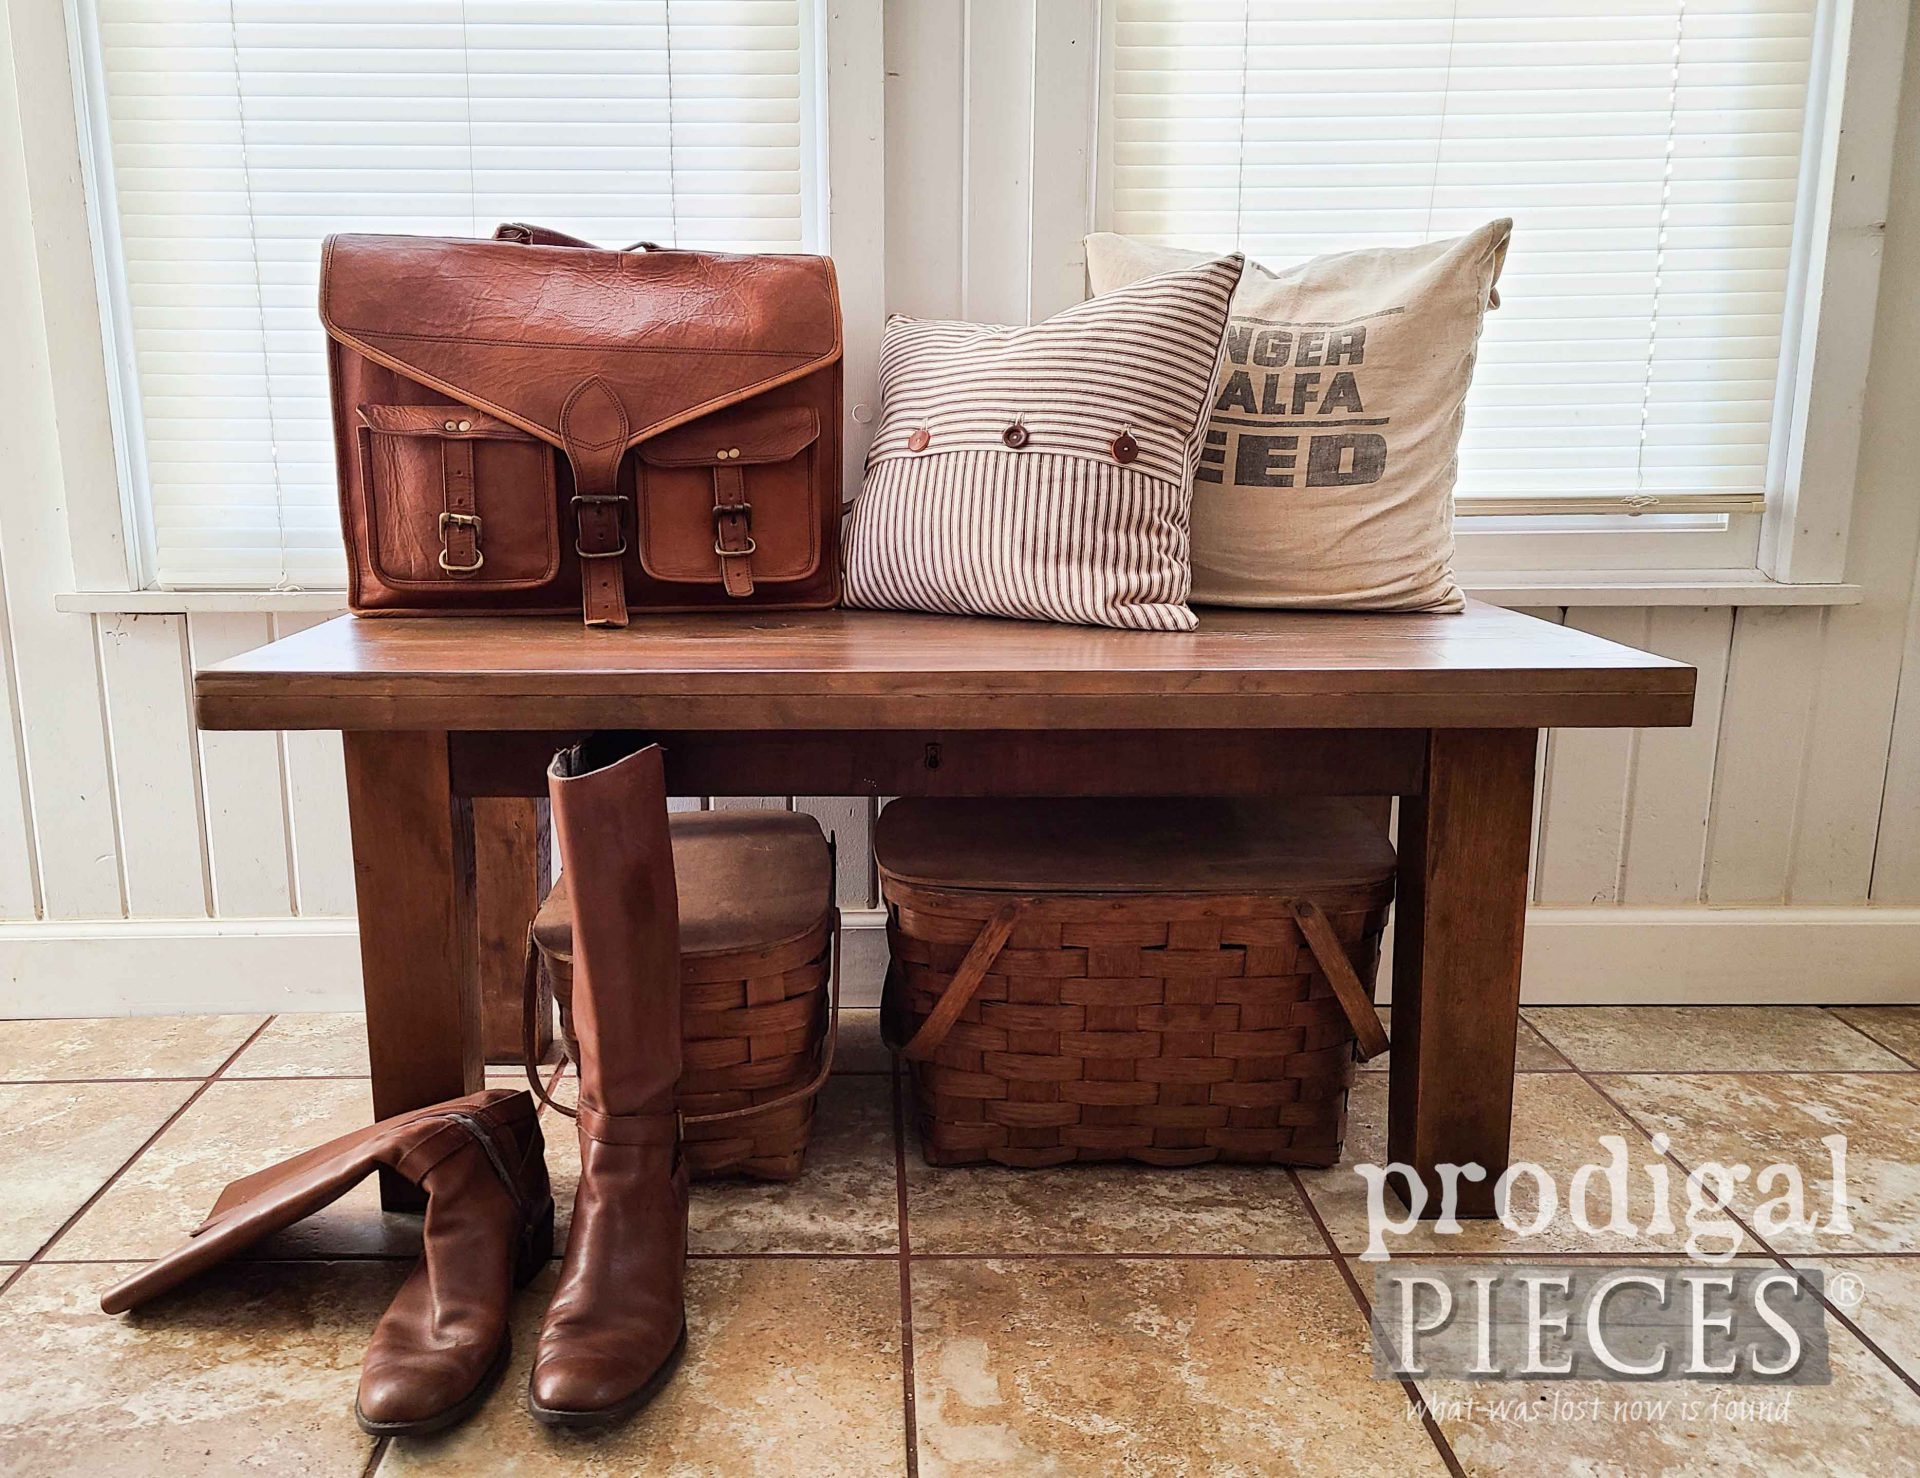 Farmhouse Reclaimed Bench Built from Antique Empire Chest Parts by Larissa of Prodigal Pieces   prodigalpieces.com #prodigalpieces #home #furniture #diy #homedecor